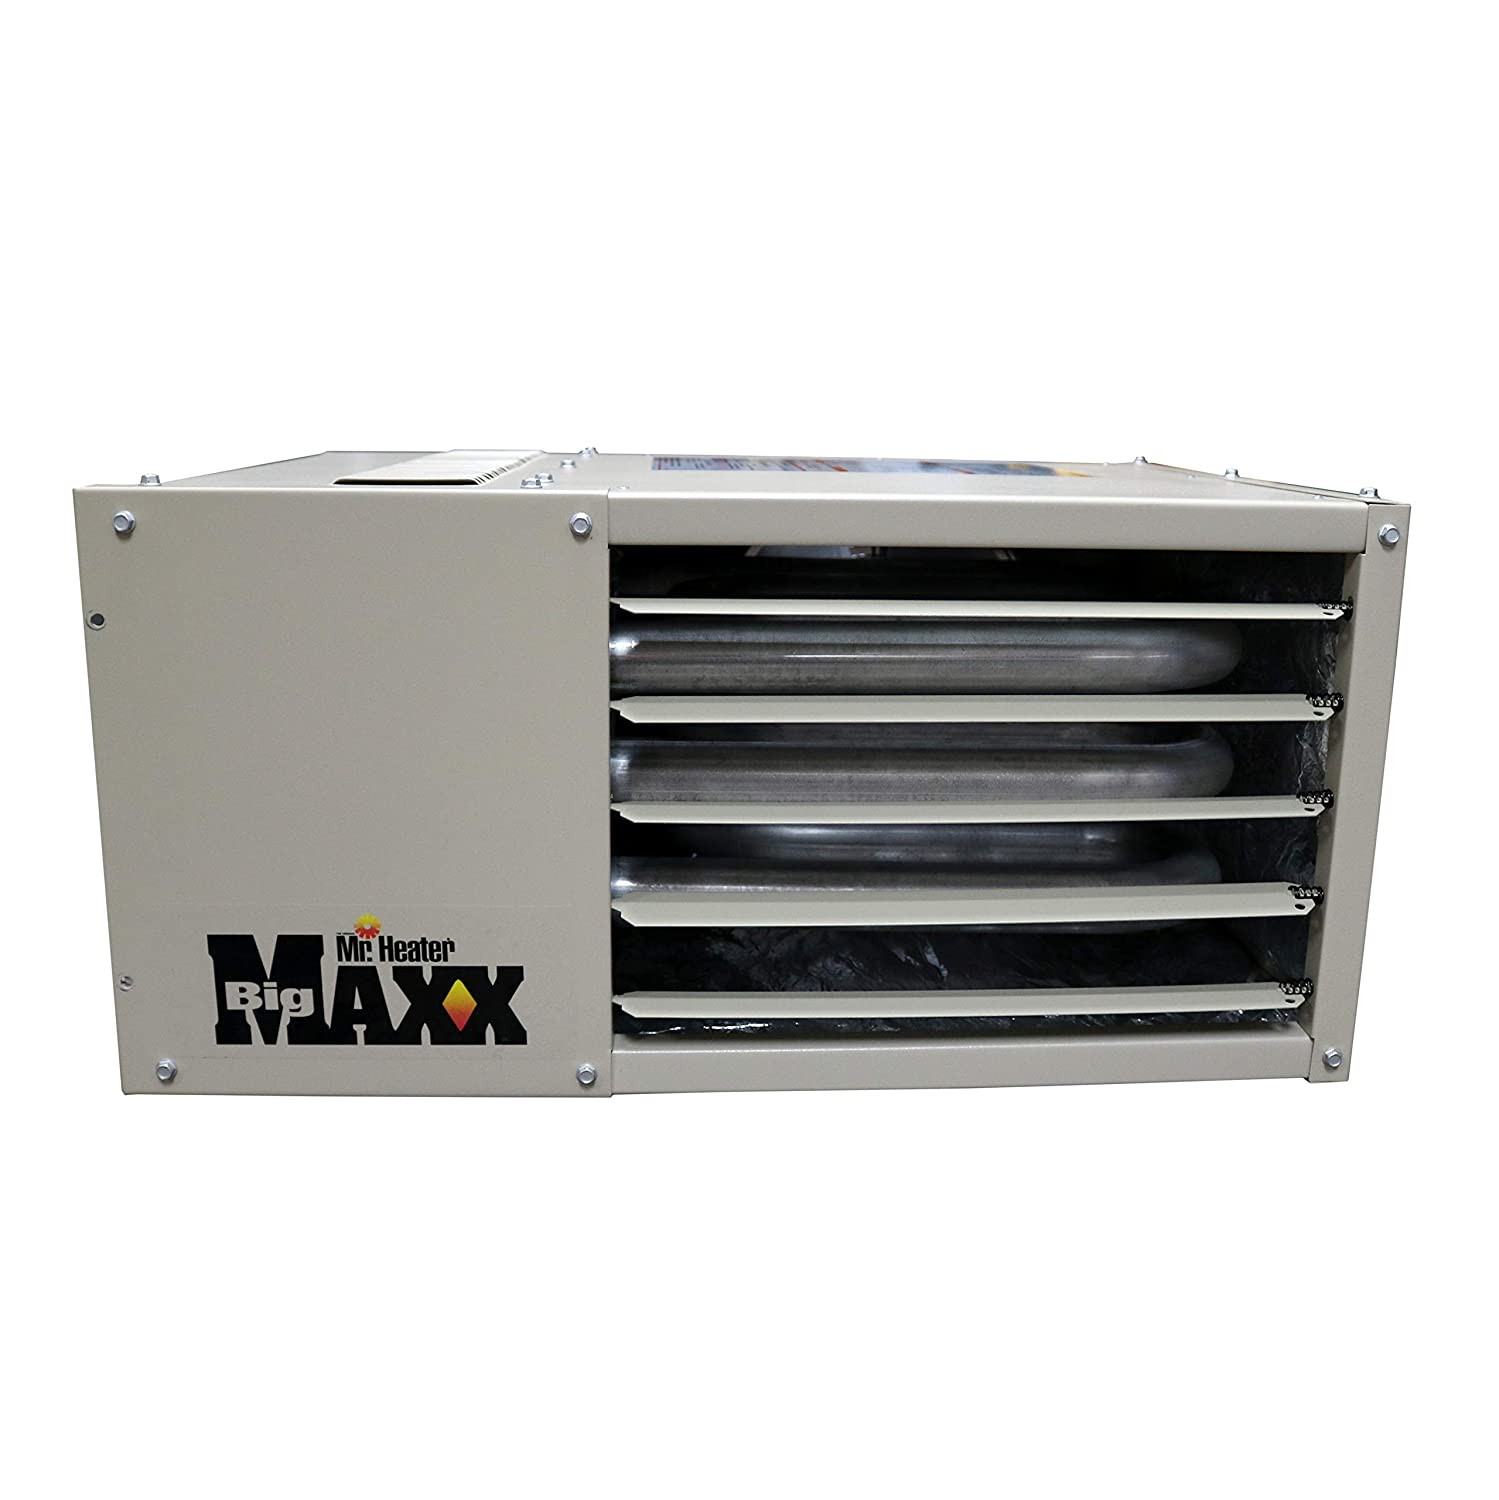 718cd2cb151 Amazon.com  Mr. Heater F260550 Big Maxx MHU50NG Natural Gas Unit Heater   Home   Kitchen